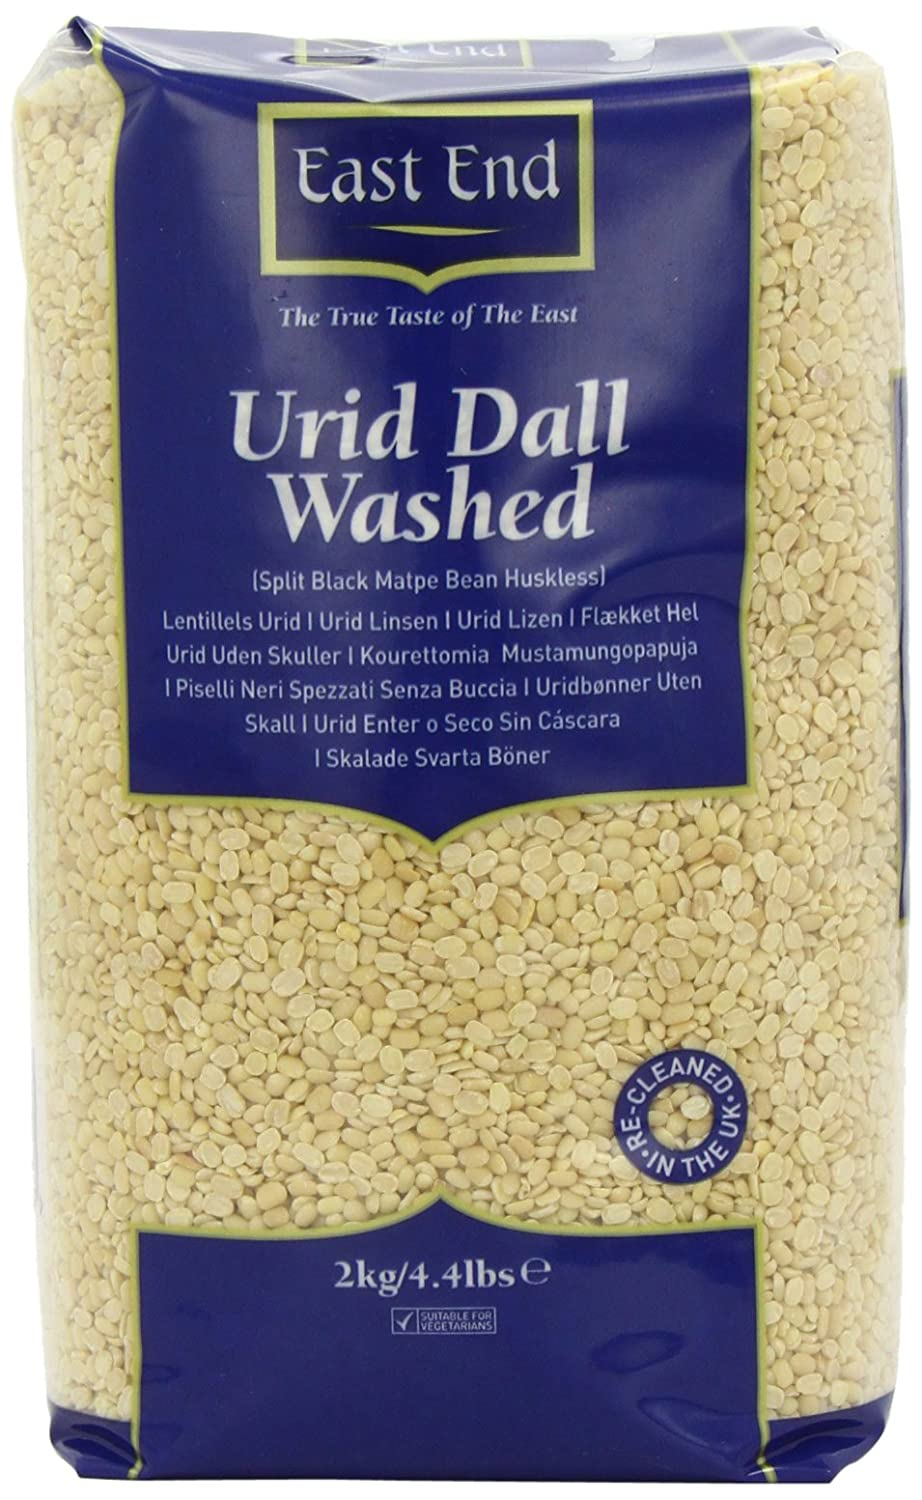 EastEnd Urid Dall Washed